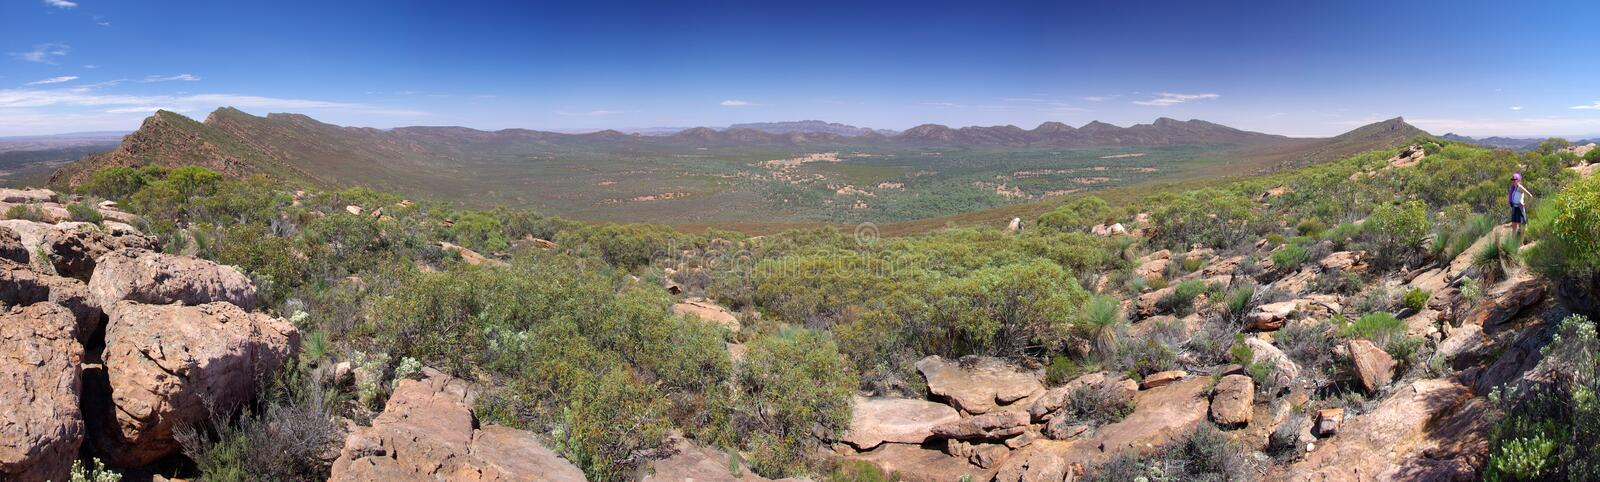 Wilpena Pound Panorama. A young woman admiring the panoramic view over the Wilpena Pound formation. Flinders Ranges National Park, South Australia royalty free stock images